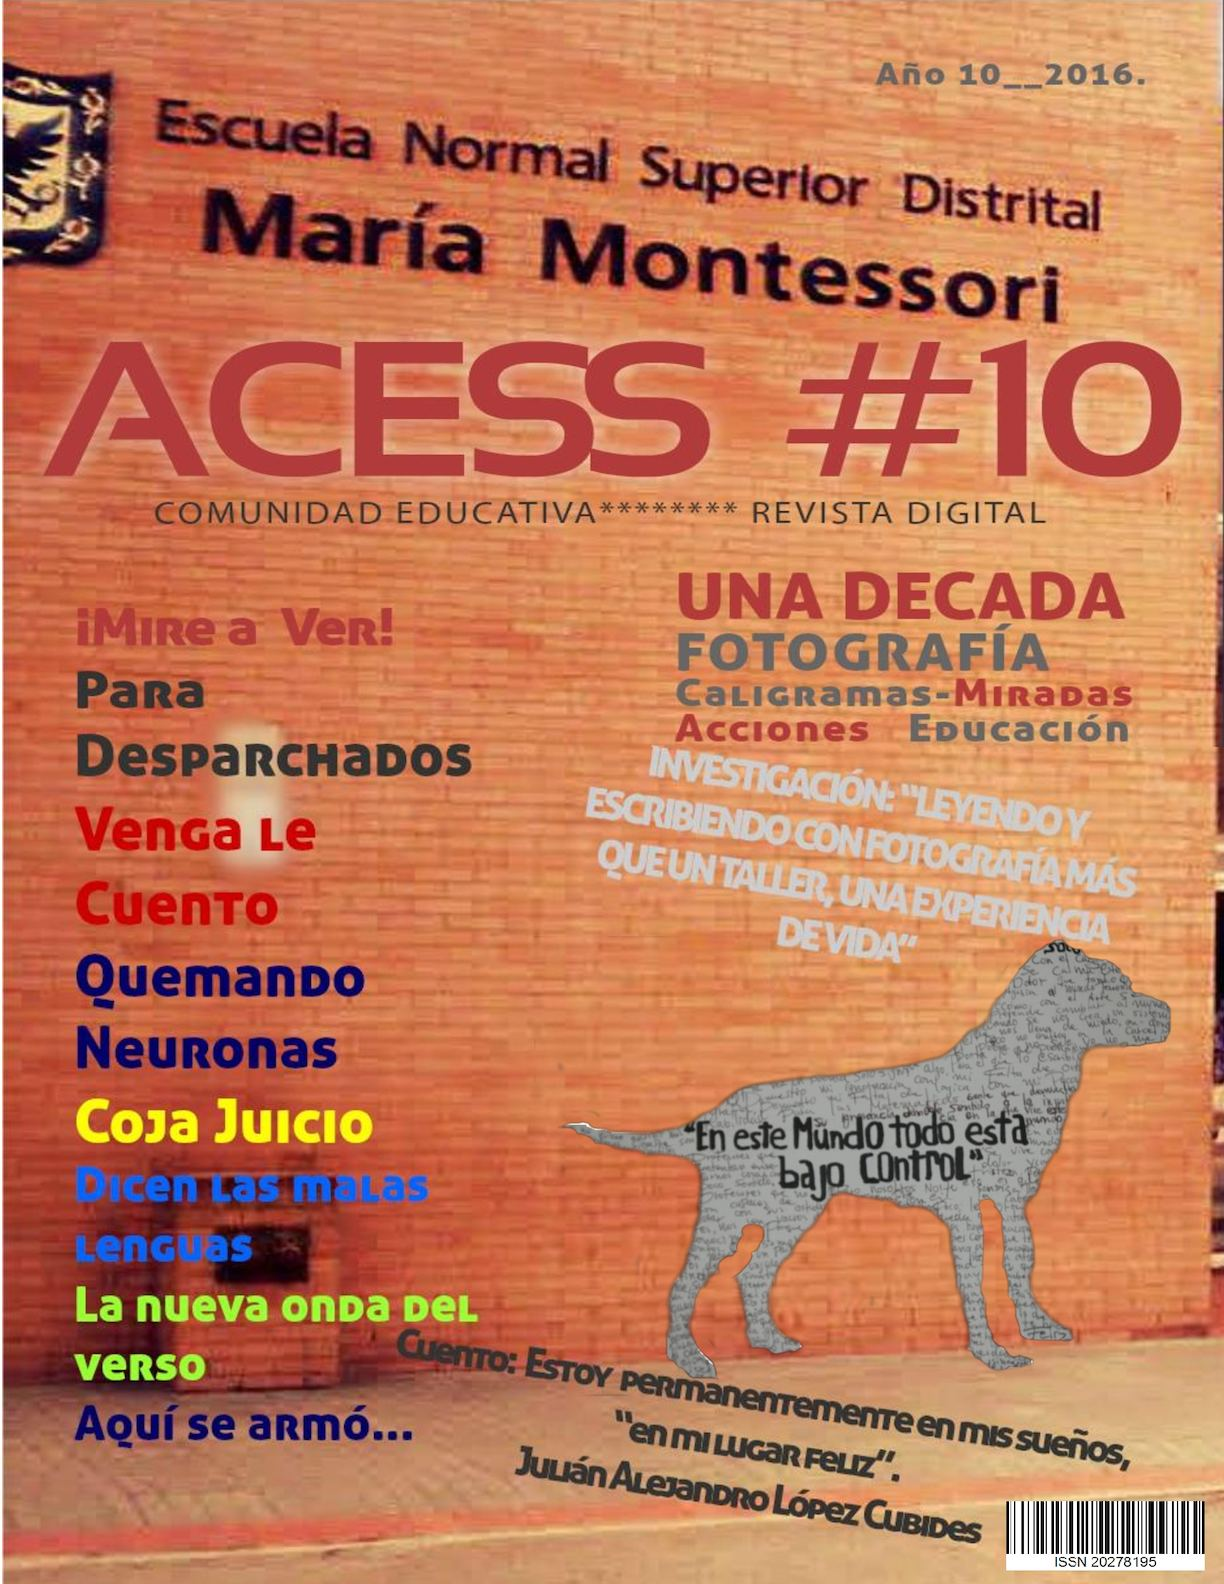 Calaméo - Acess2016 10full 8cd37c4dea15